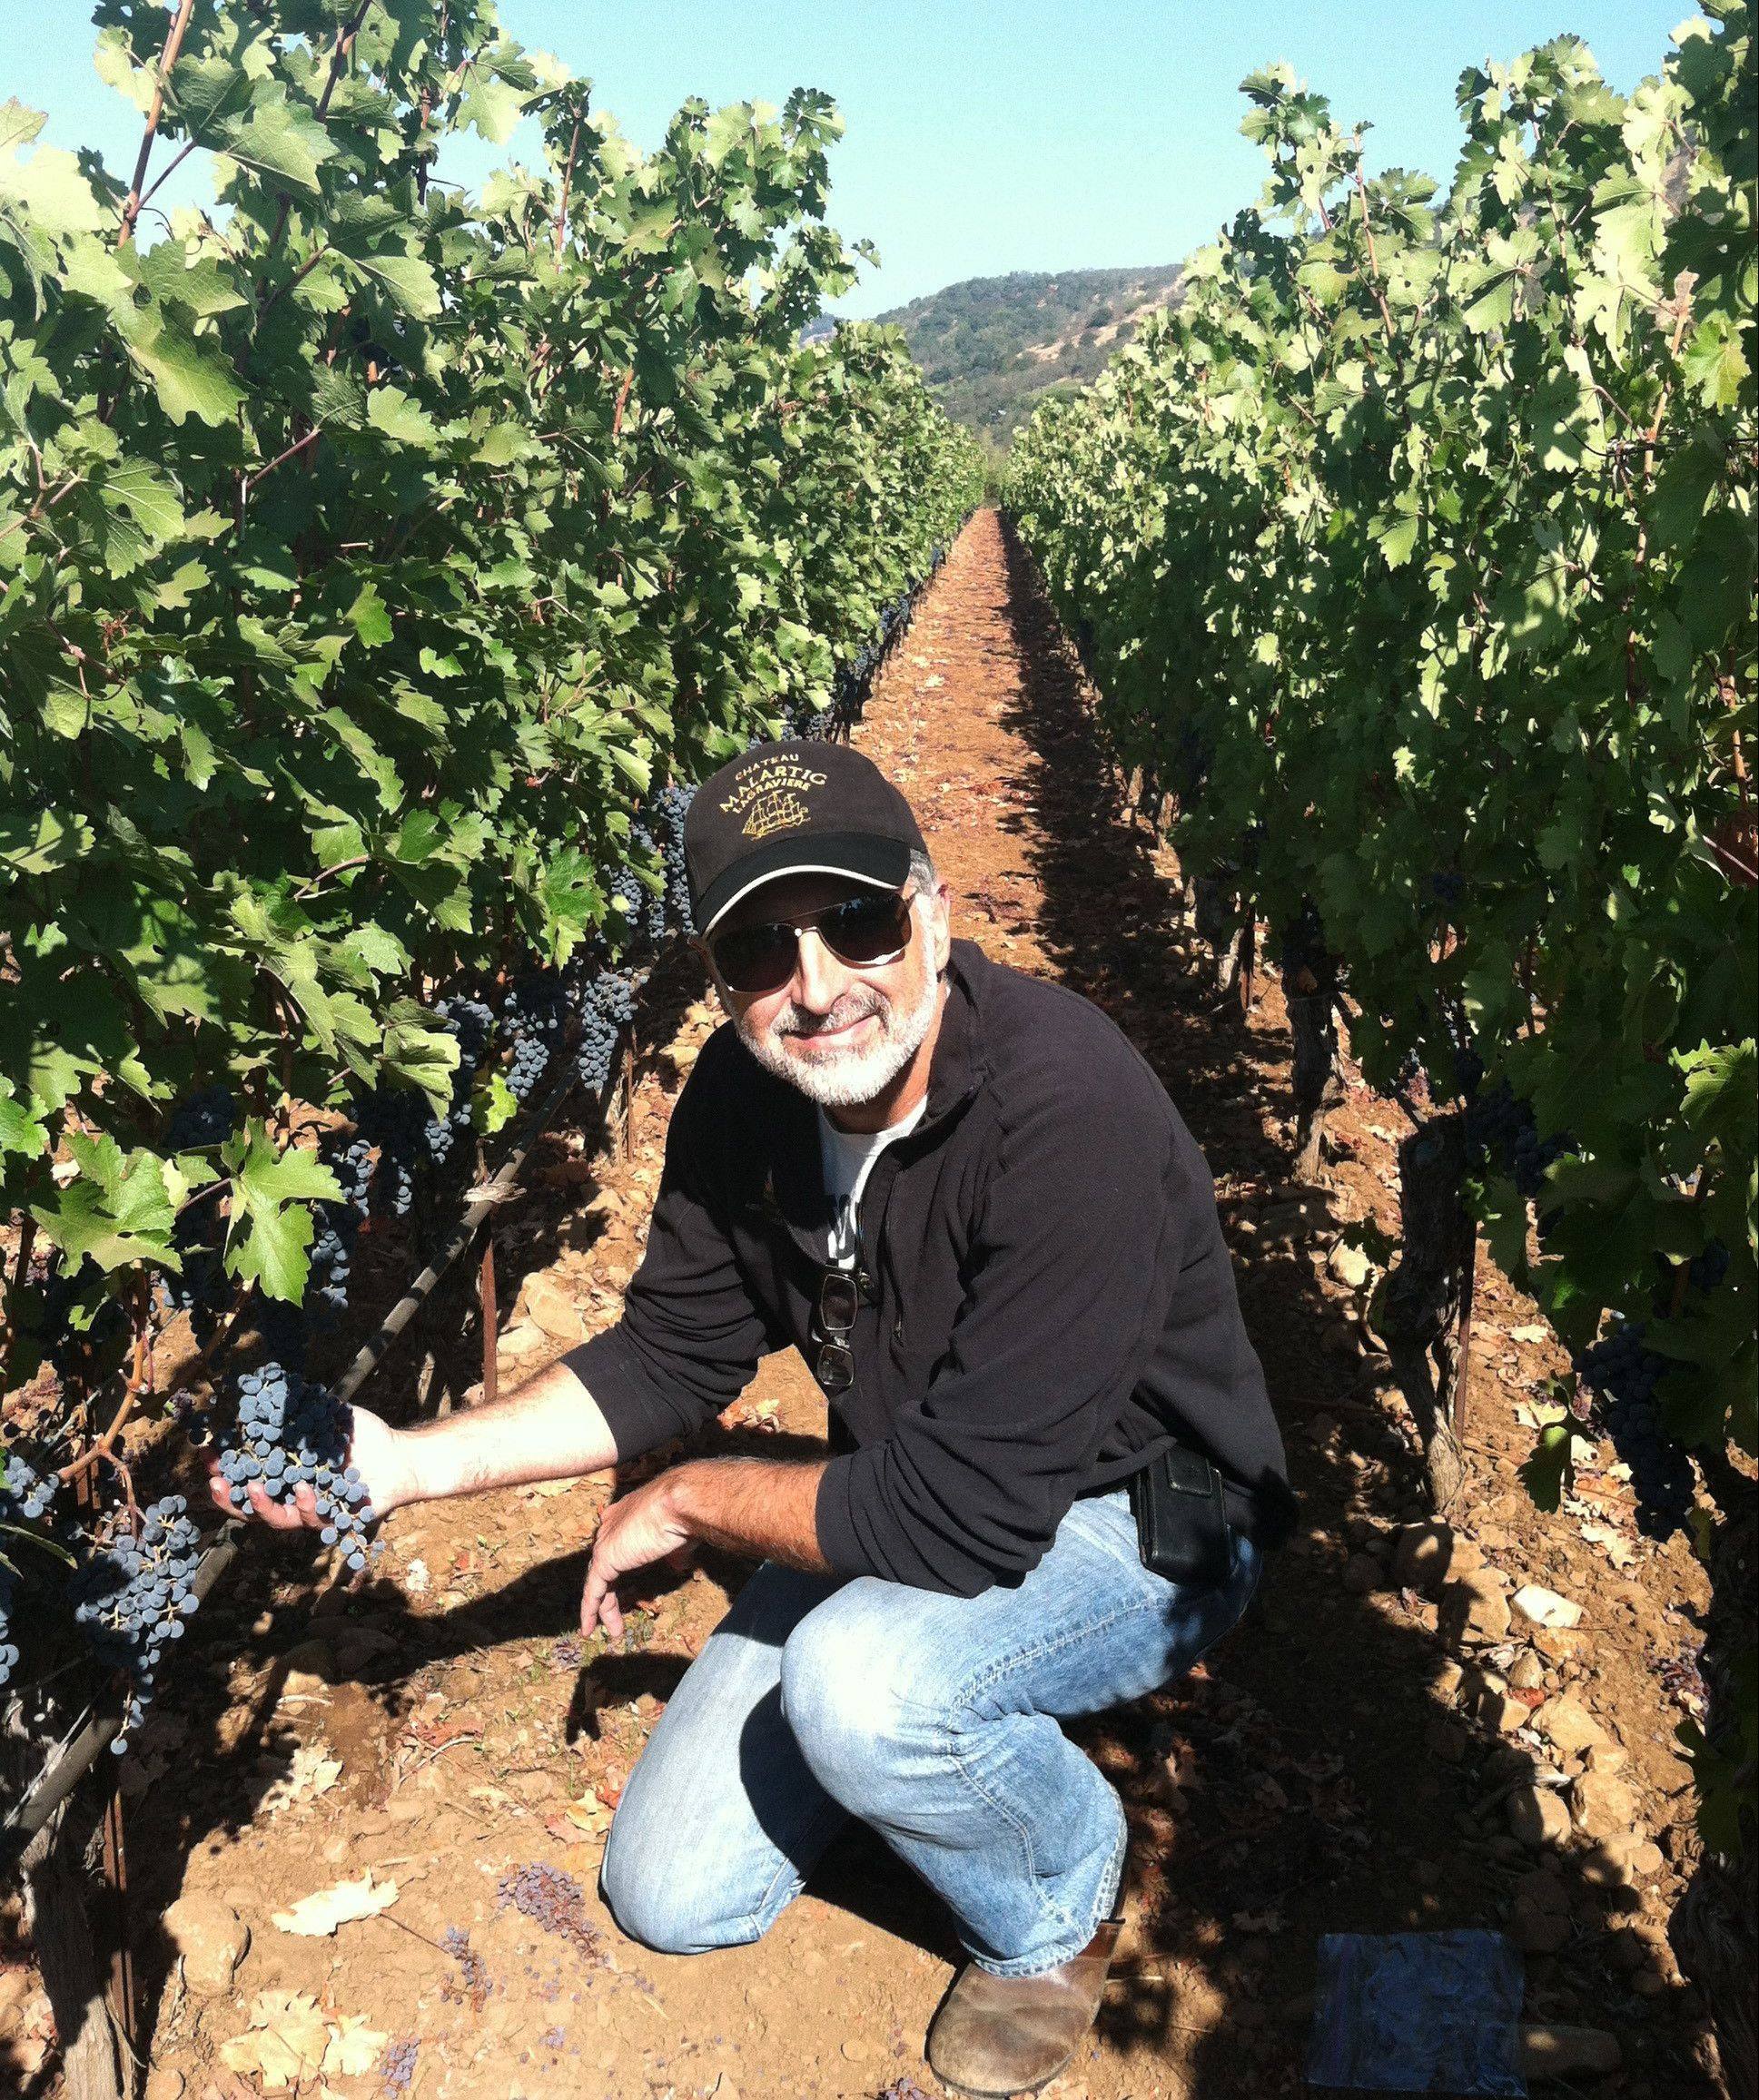 Winemaker Jeff Morgan samples Solomon grapes in the Covenant Wines vineyard in Napa Valley, Calif.